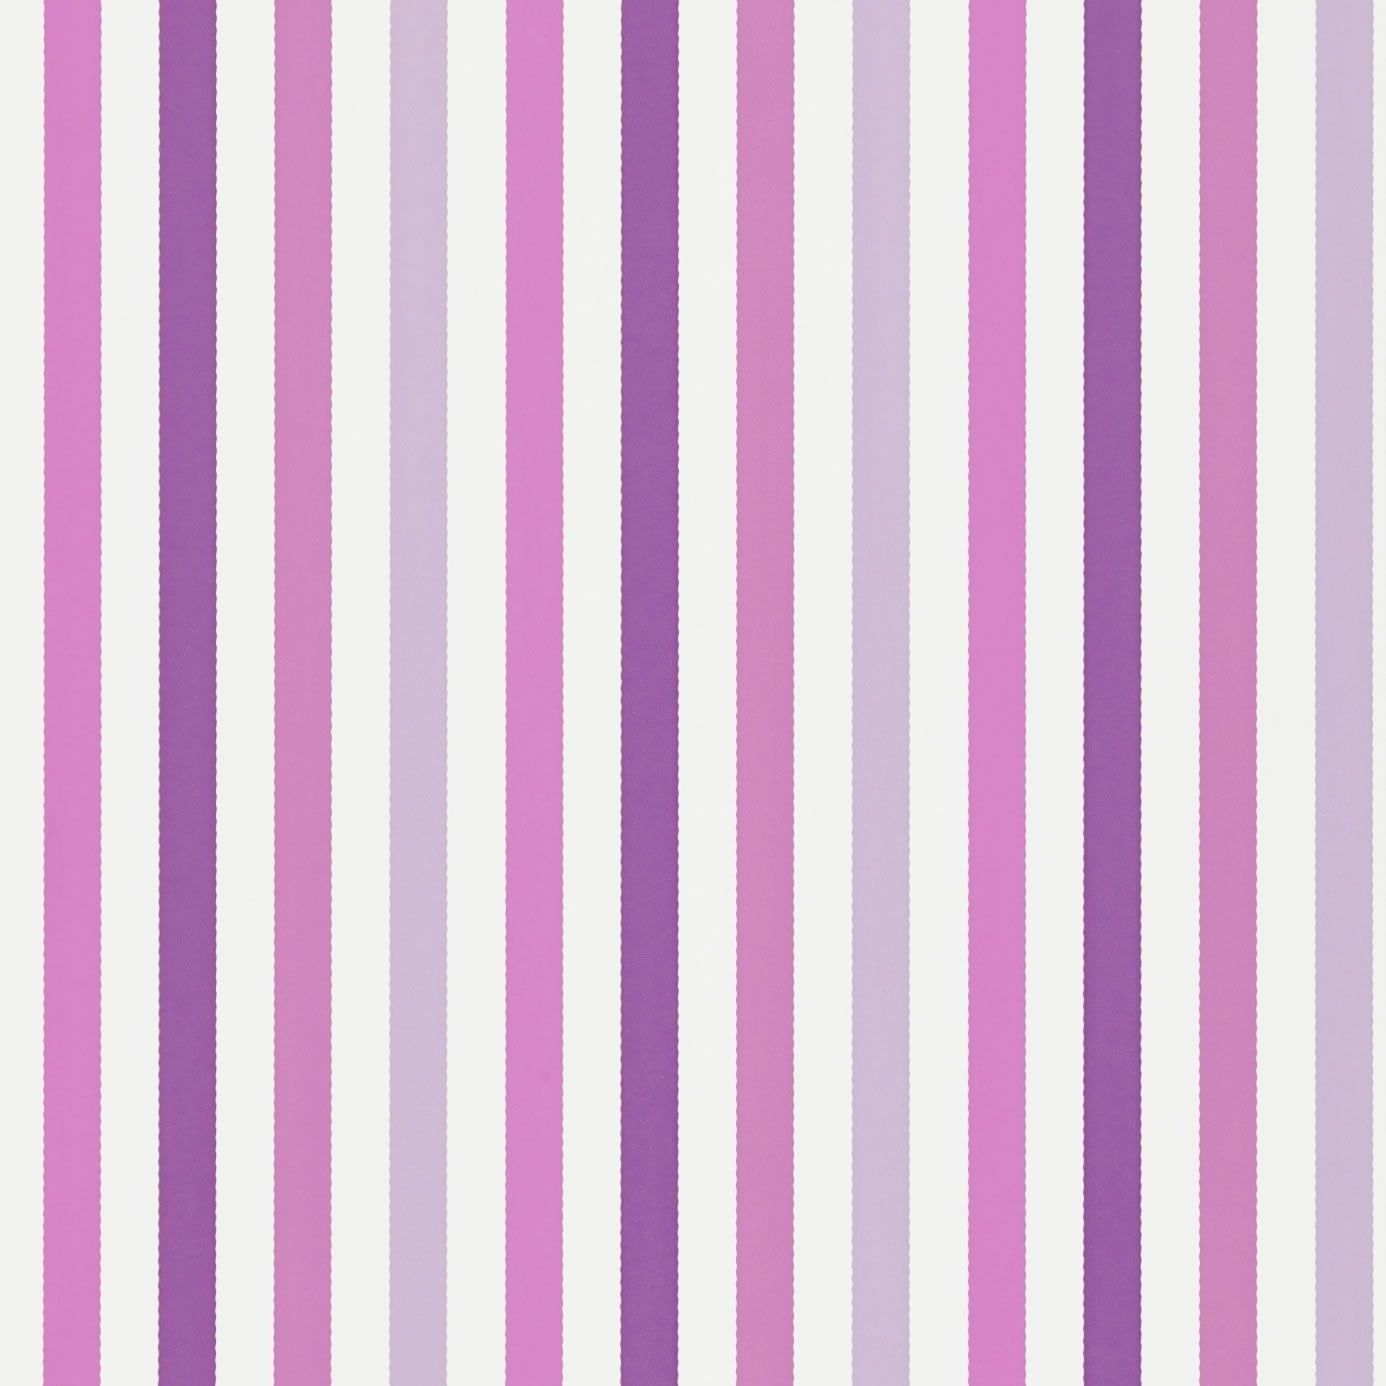 Pink striped wallpaper hd - Similiar Purple And Pink Striped Wall Keywords